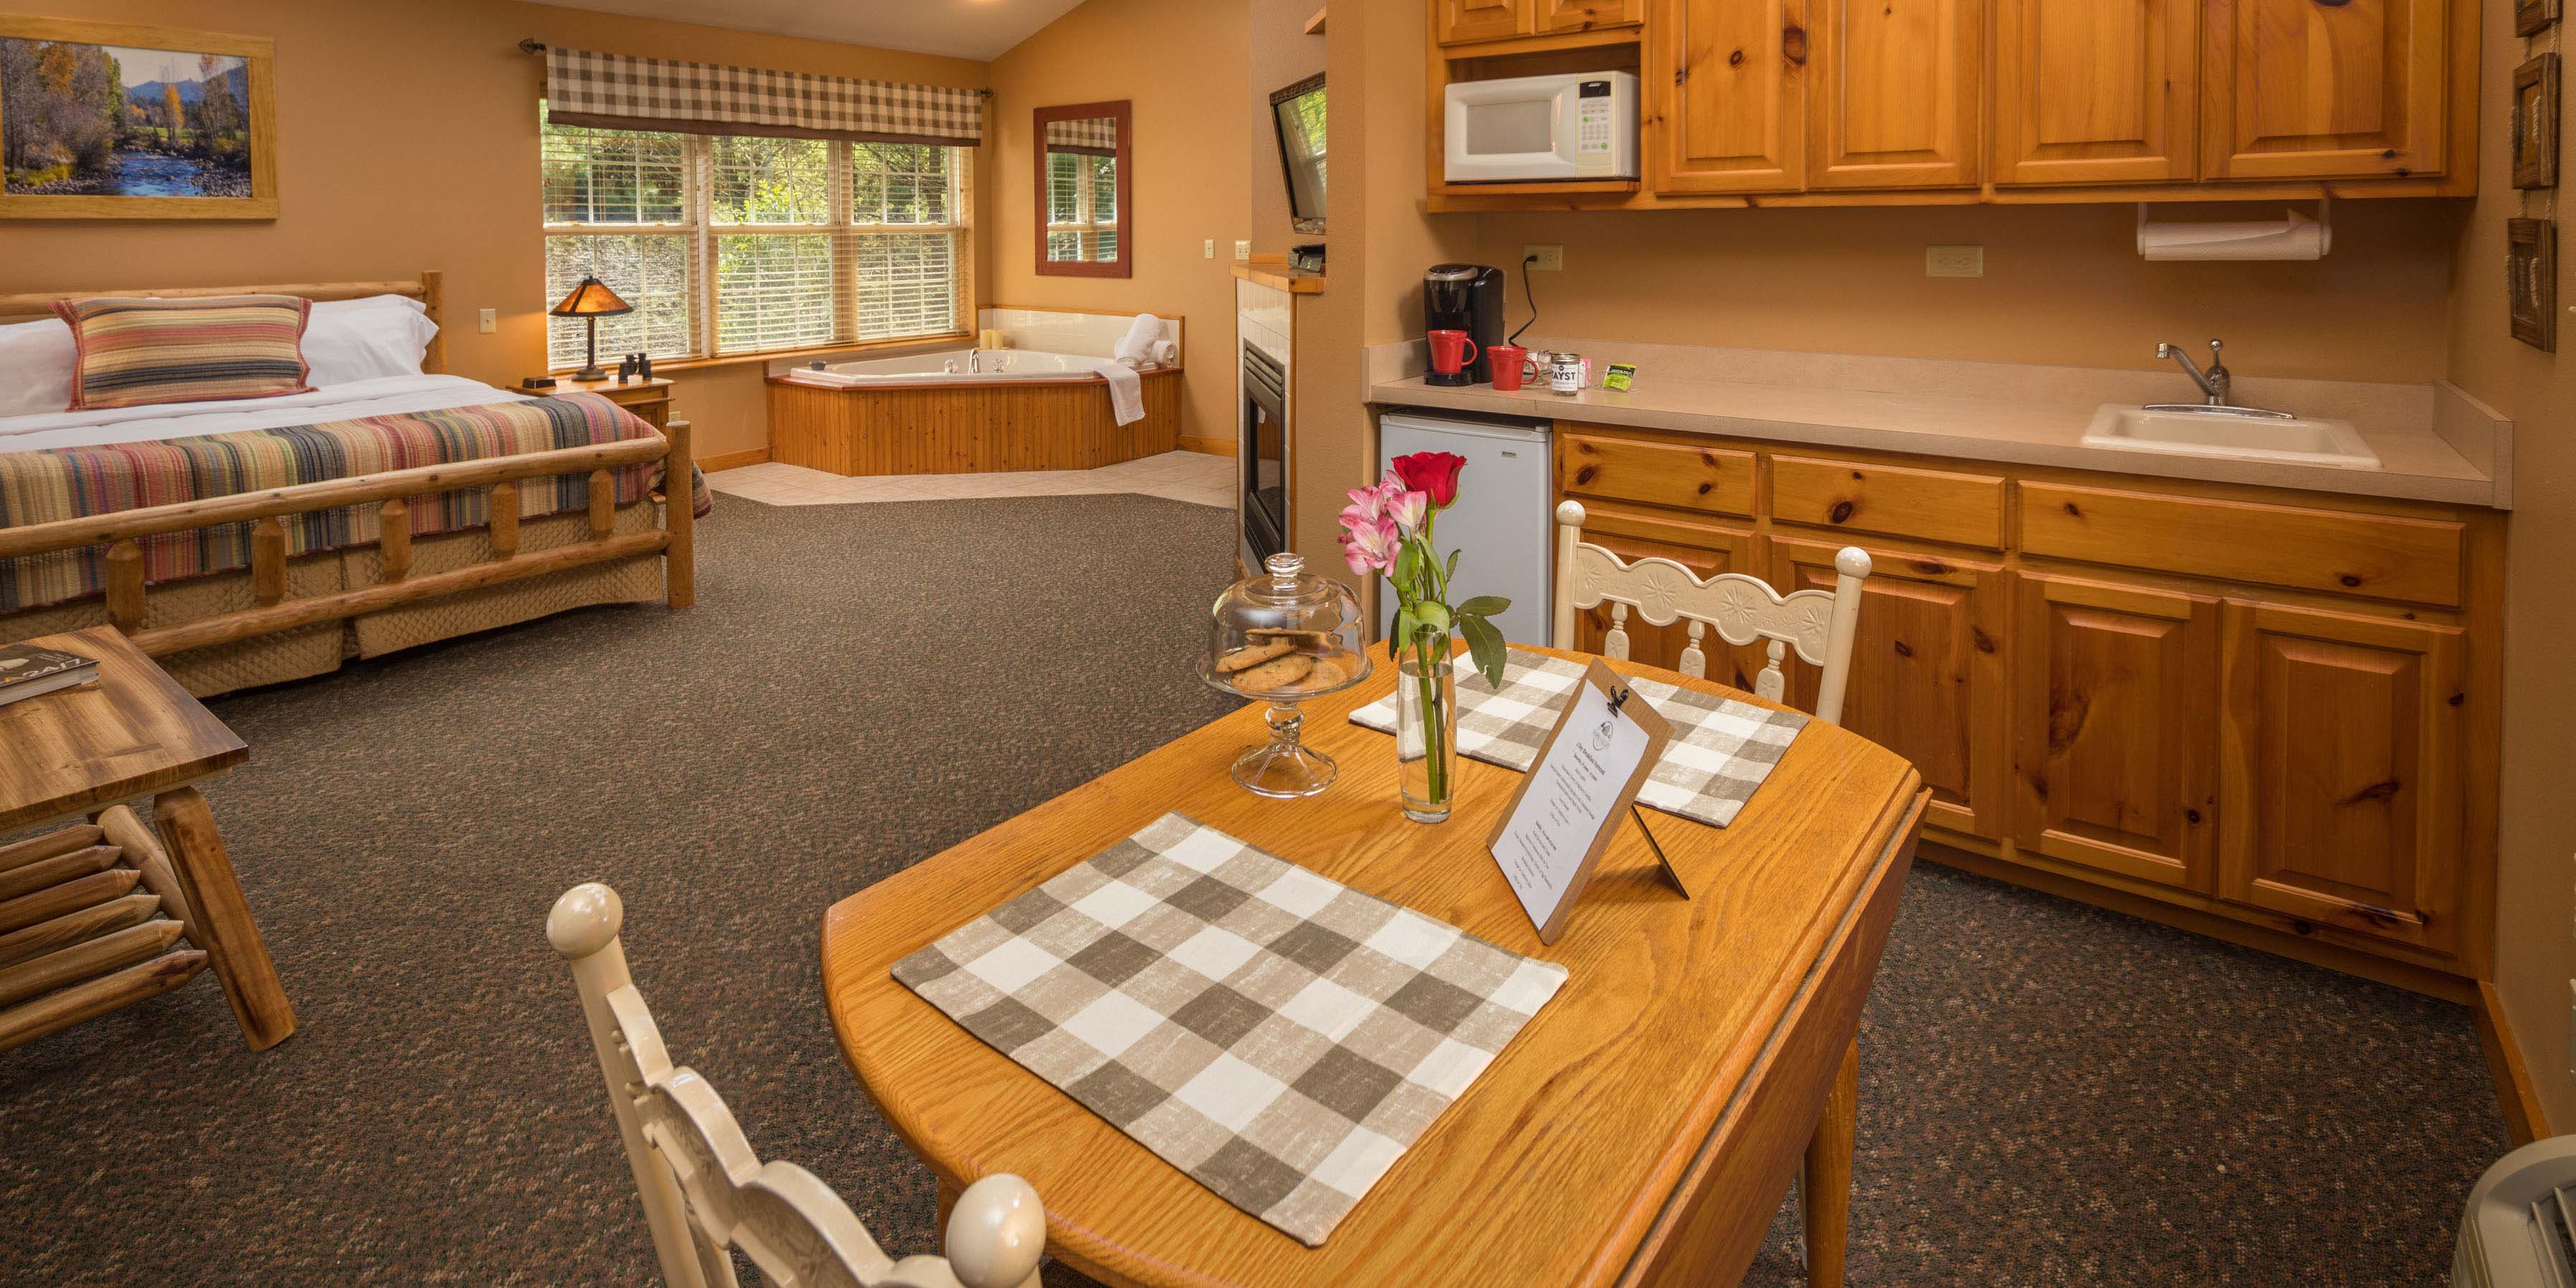 Picture of Hawk Valley Retreat cottage kitchen area